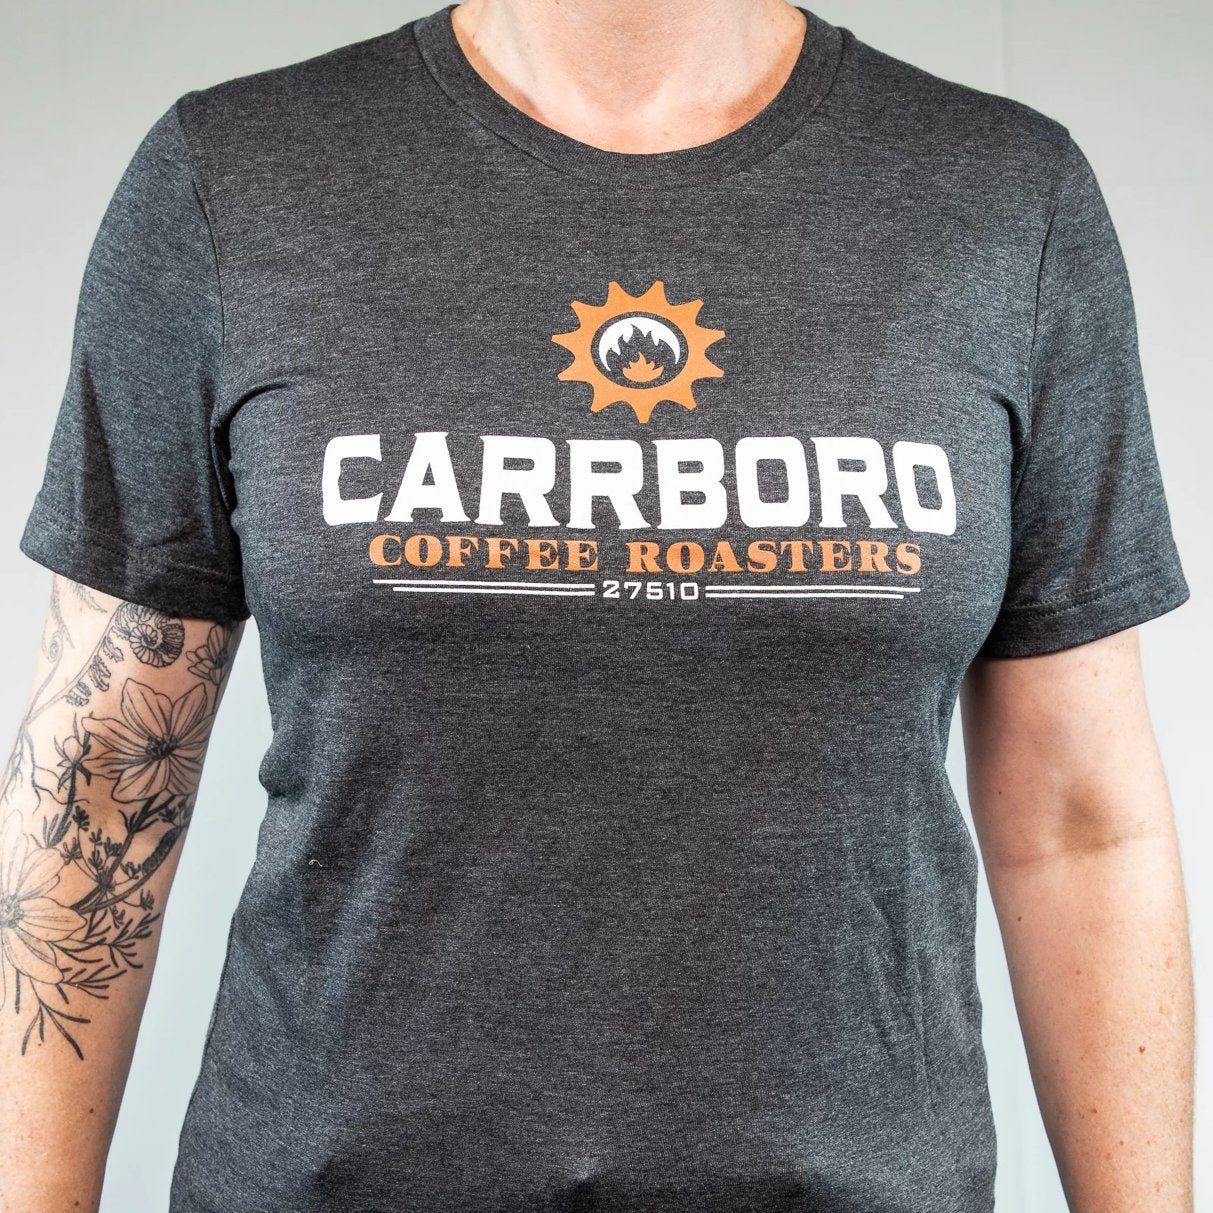 Carrboro Coffee Roasters T-Shirt